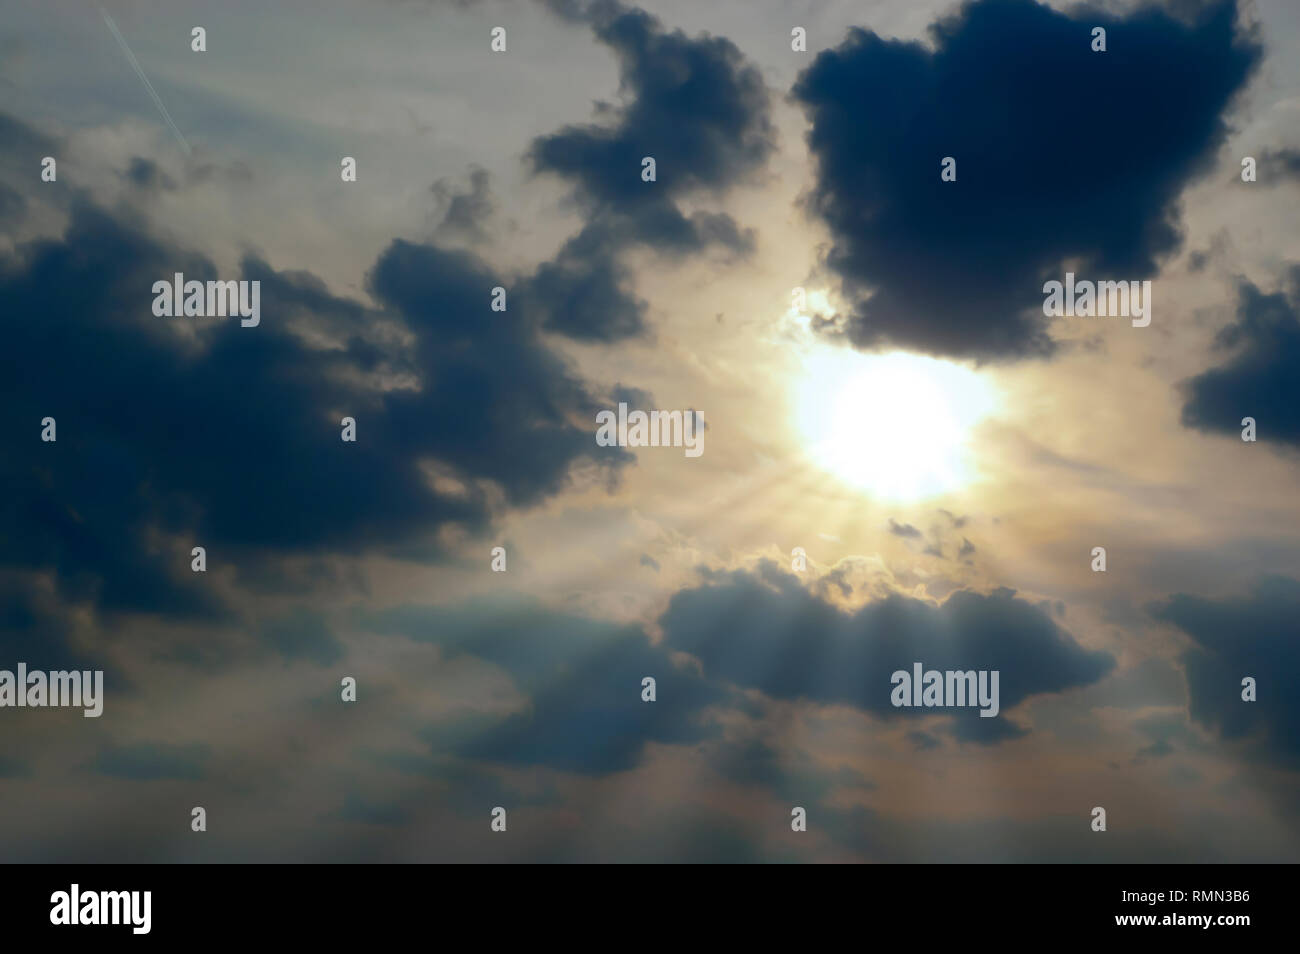 Crepuscular Rays Radiate From The Sun Partially Covered By A Bank Of Dark Stratocumulus Clouds Lingering In The Sky After A Summer Storm Stock Photo Alamy